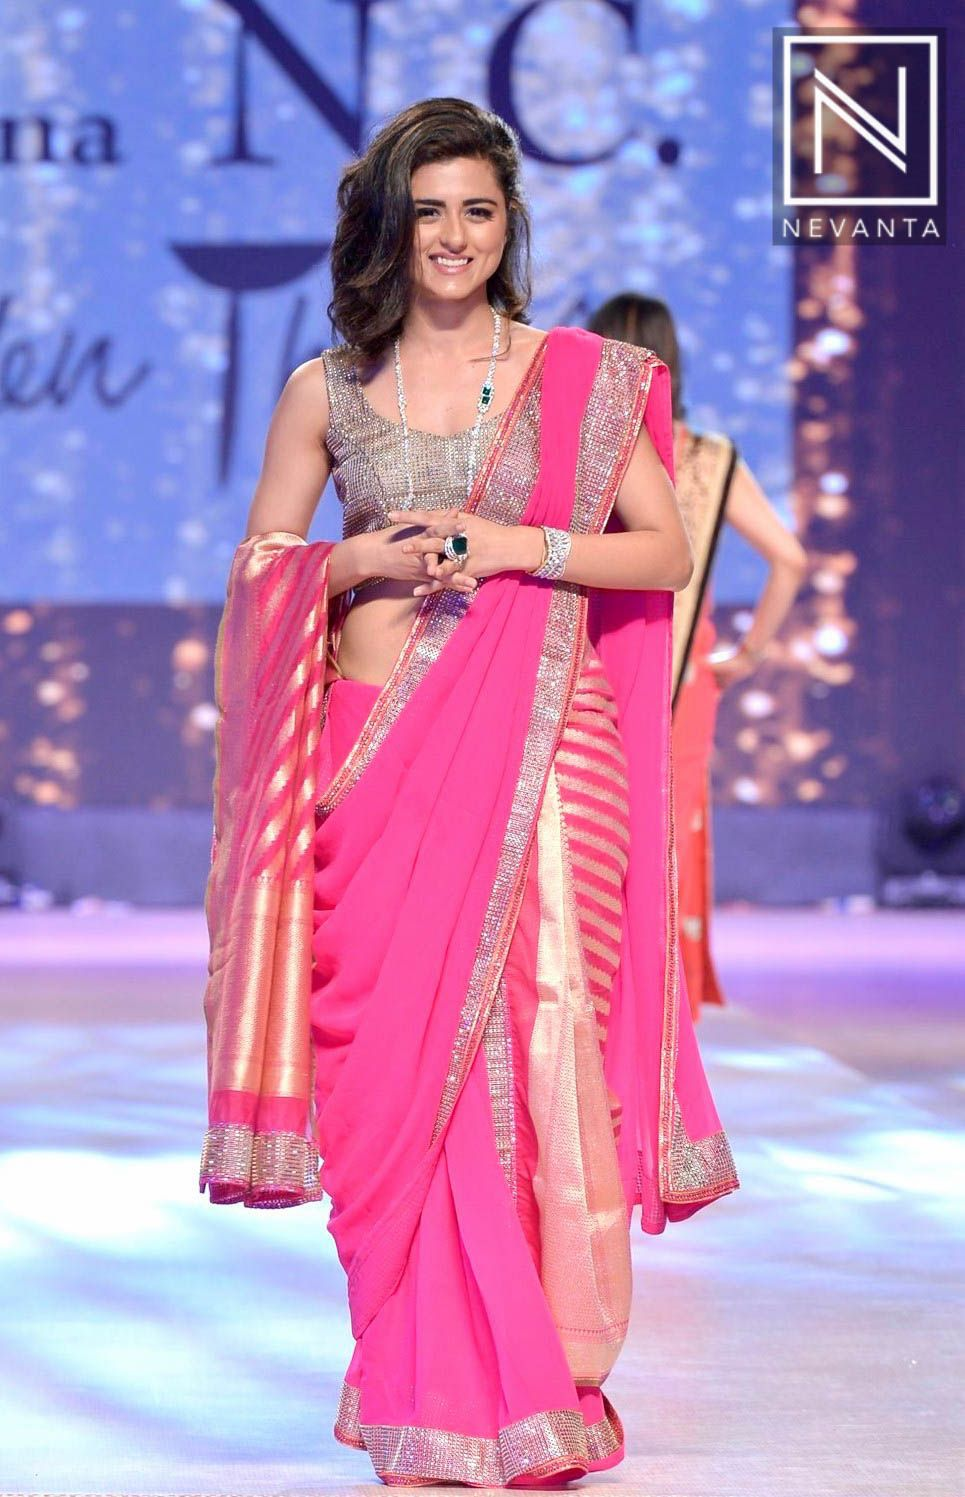 b409f0c9610199 #RidhiDogra looked pretty in #pink saree and a silver blingy blouse by  #ShainaNc